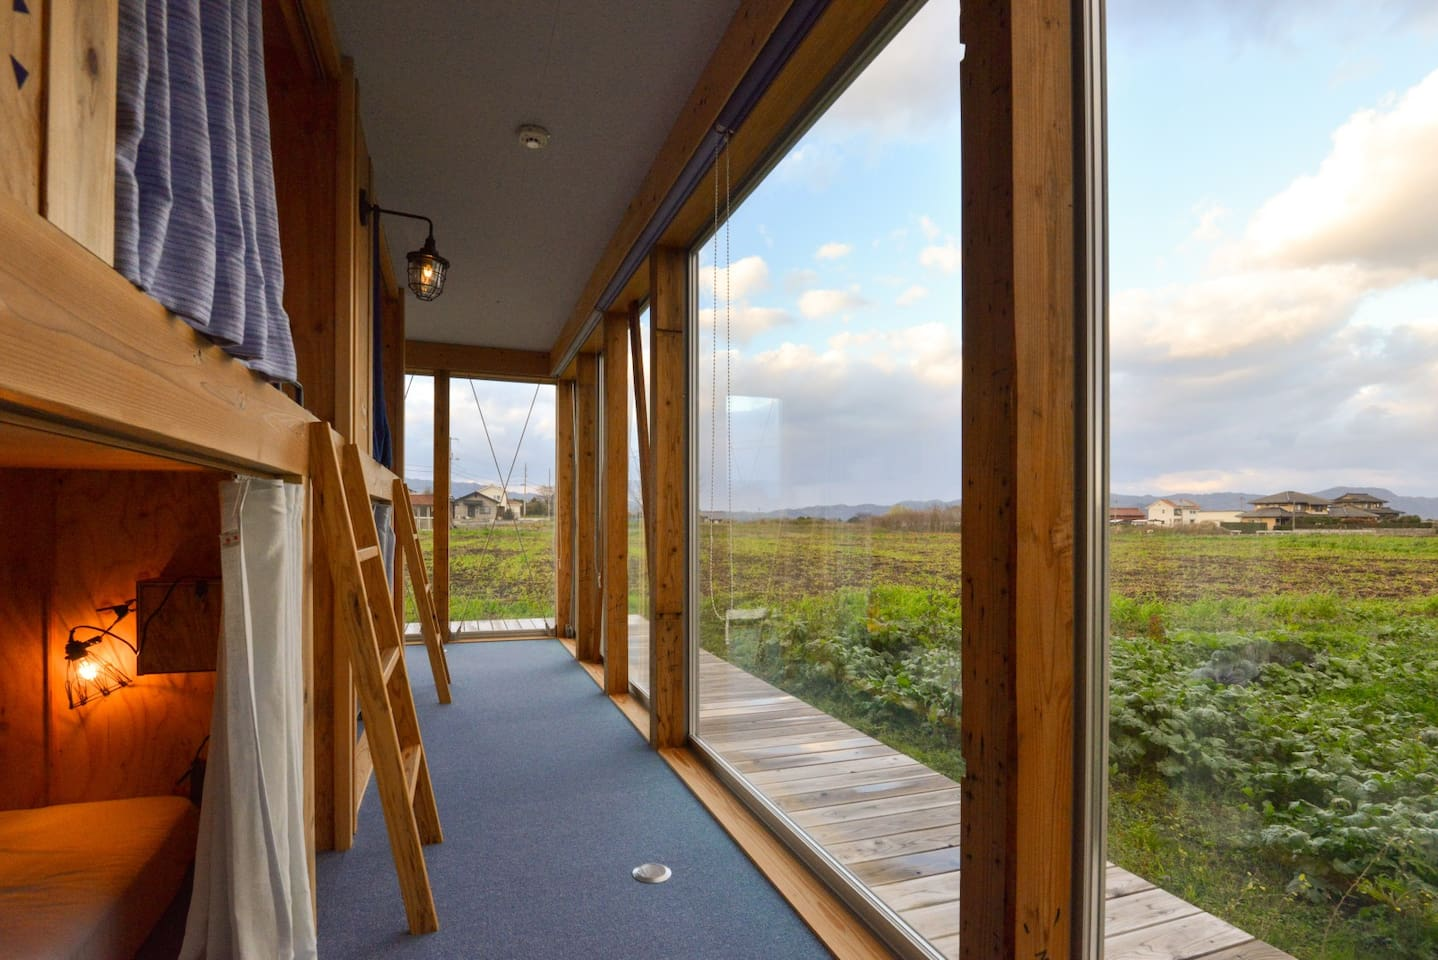 Guests can enjoy island's unique farm-view from bed cabins.